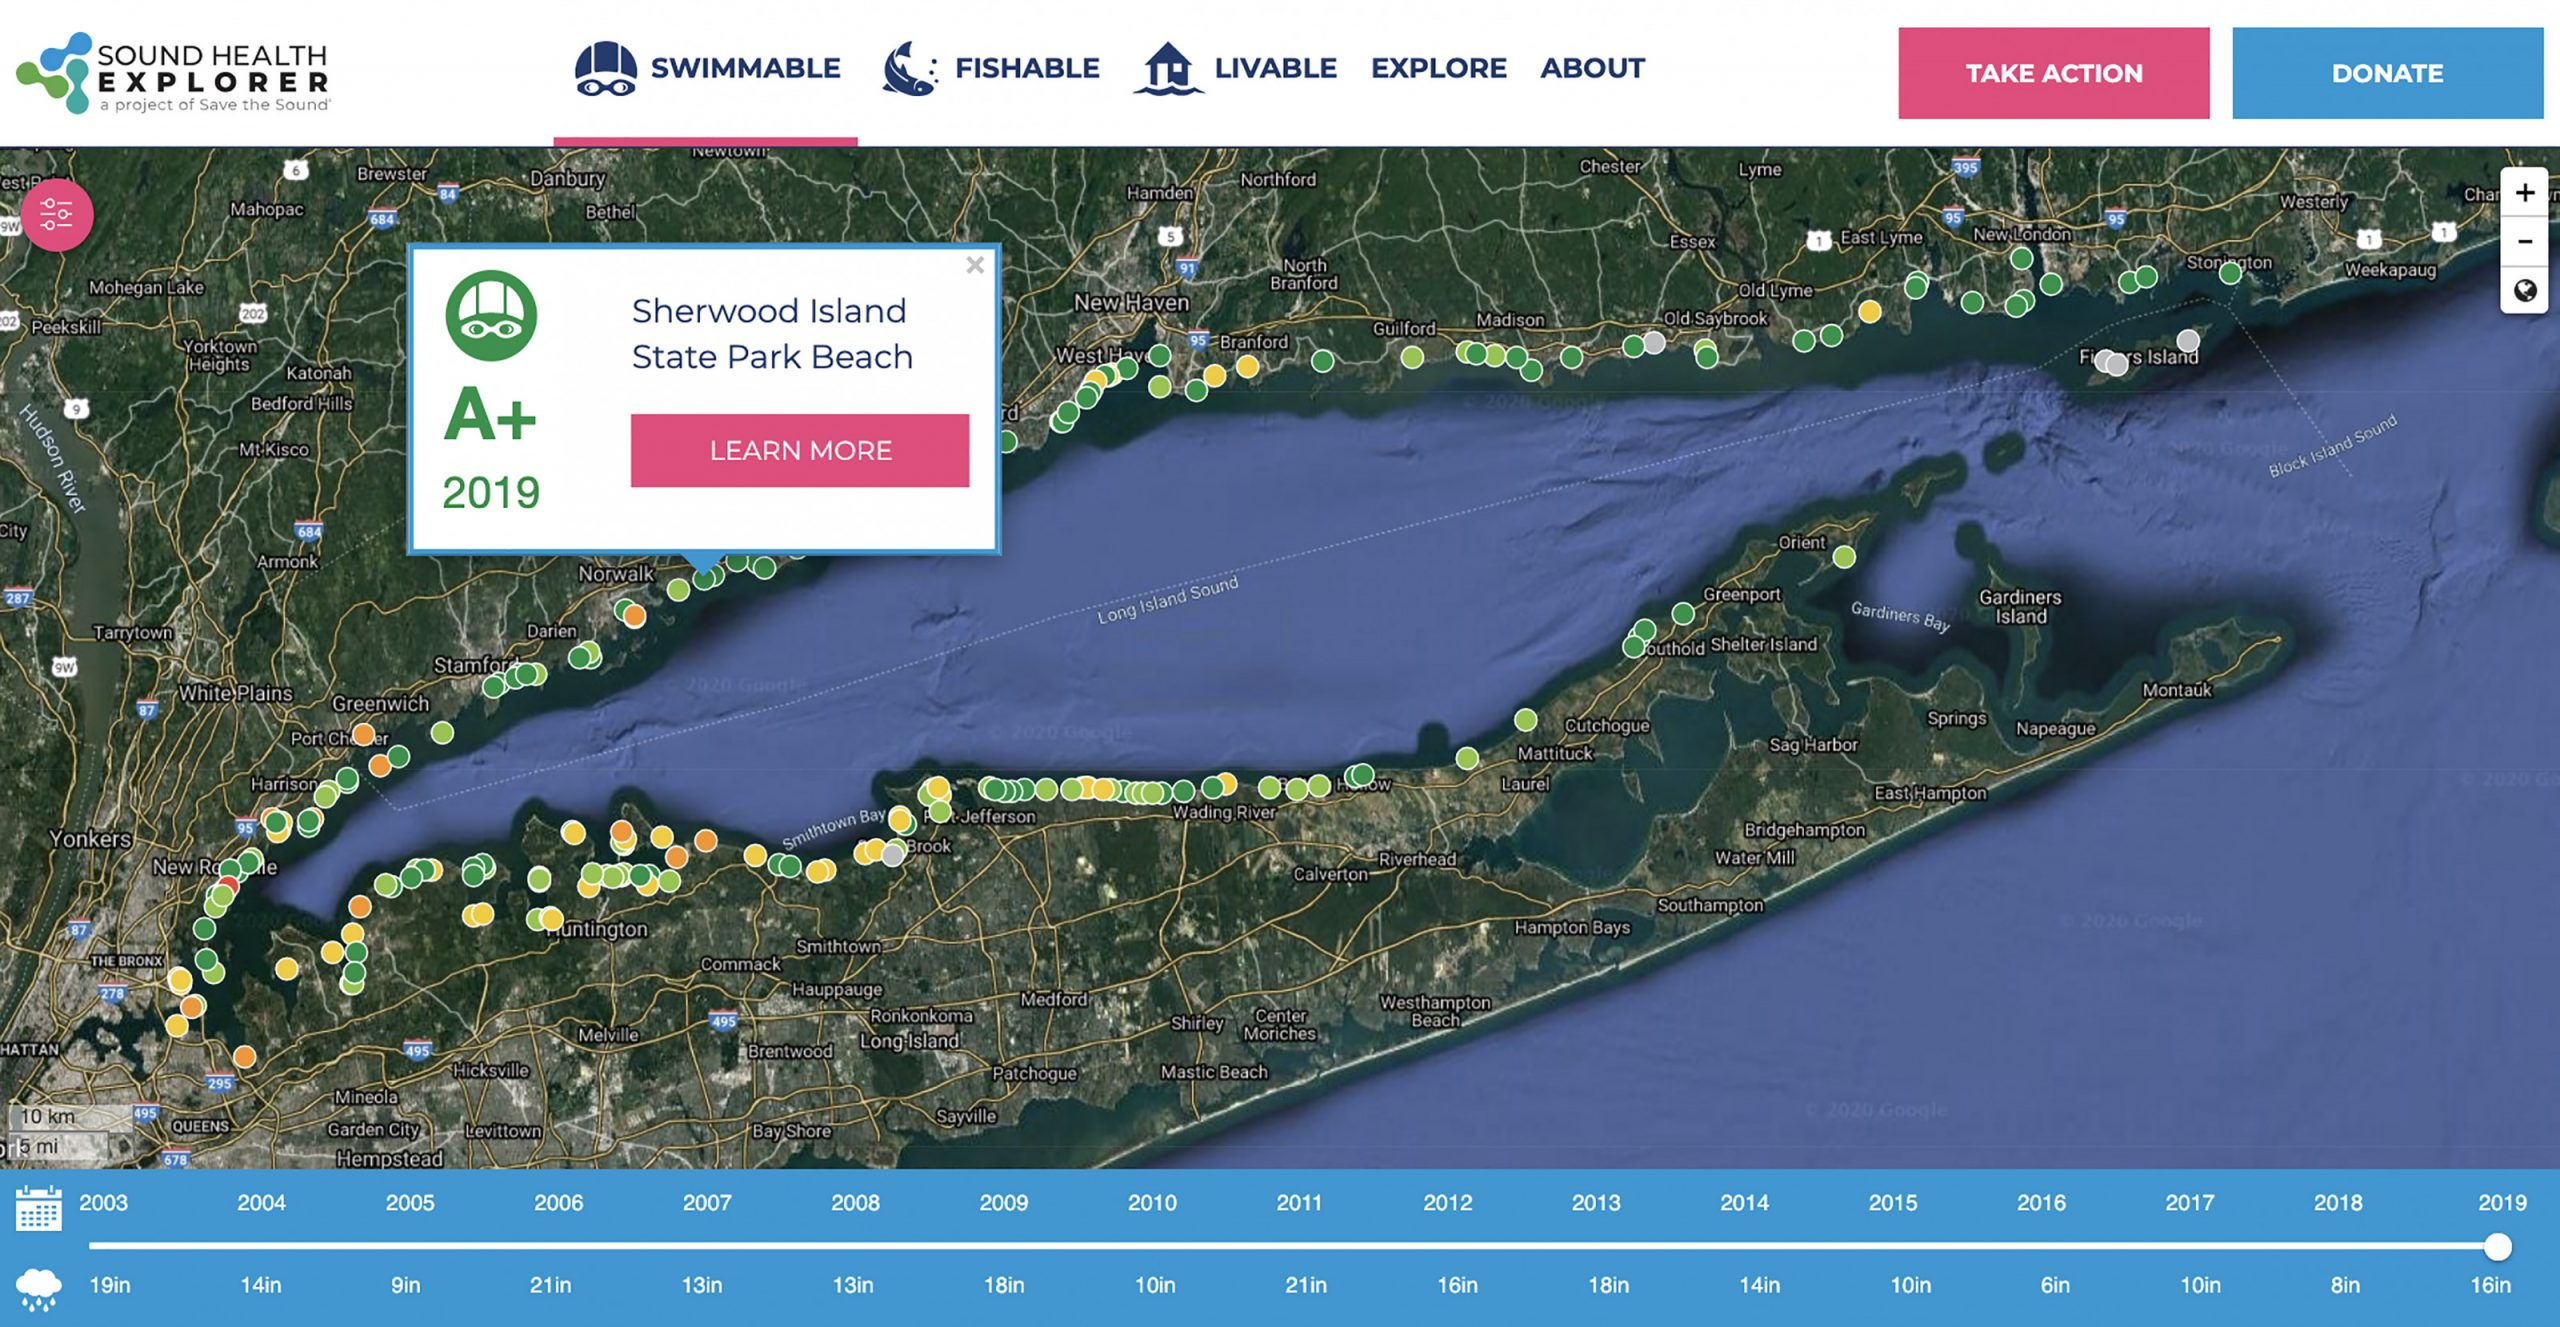 Screenshot of Long Island Sound showing colored circles for trends in water quality at beaches